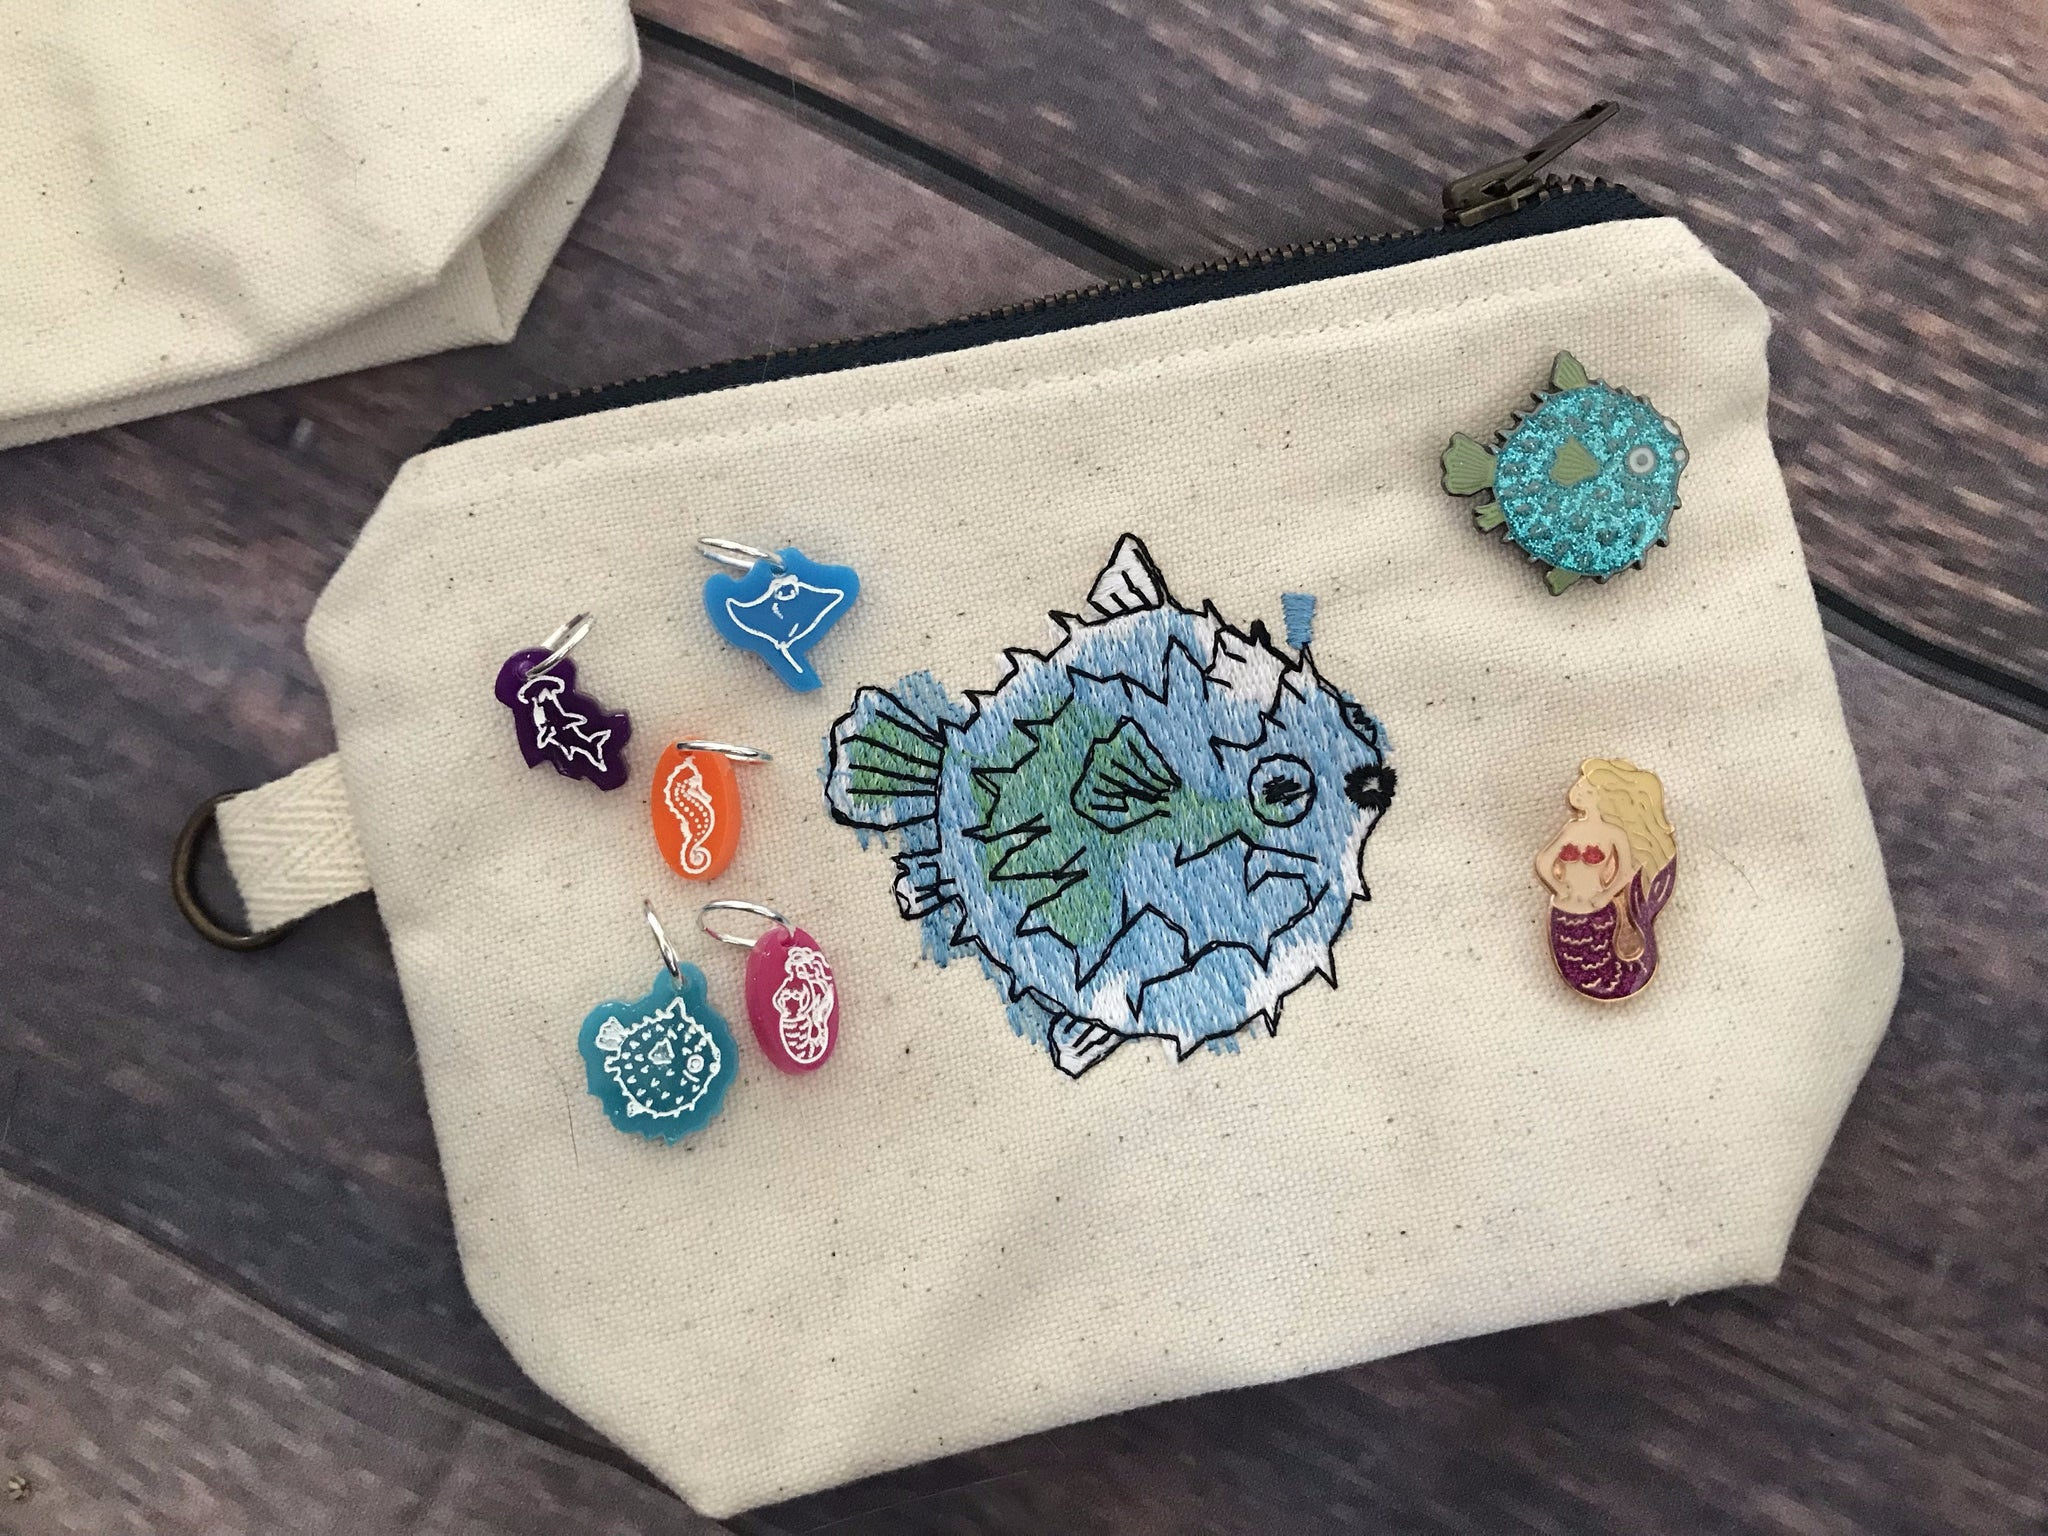 Mermaid - Notions Pouch